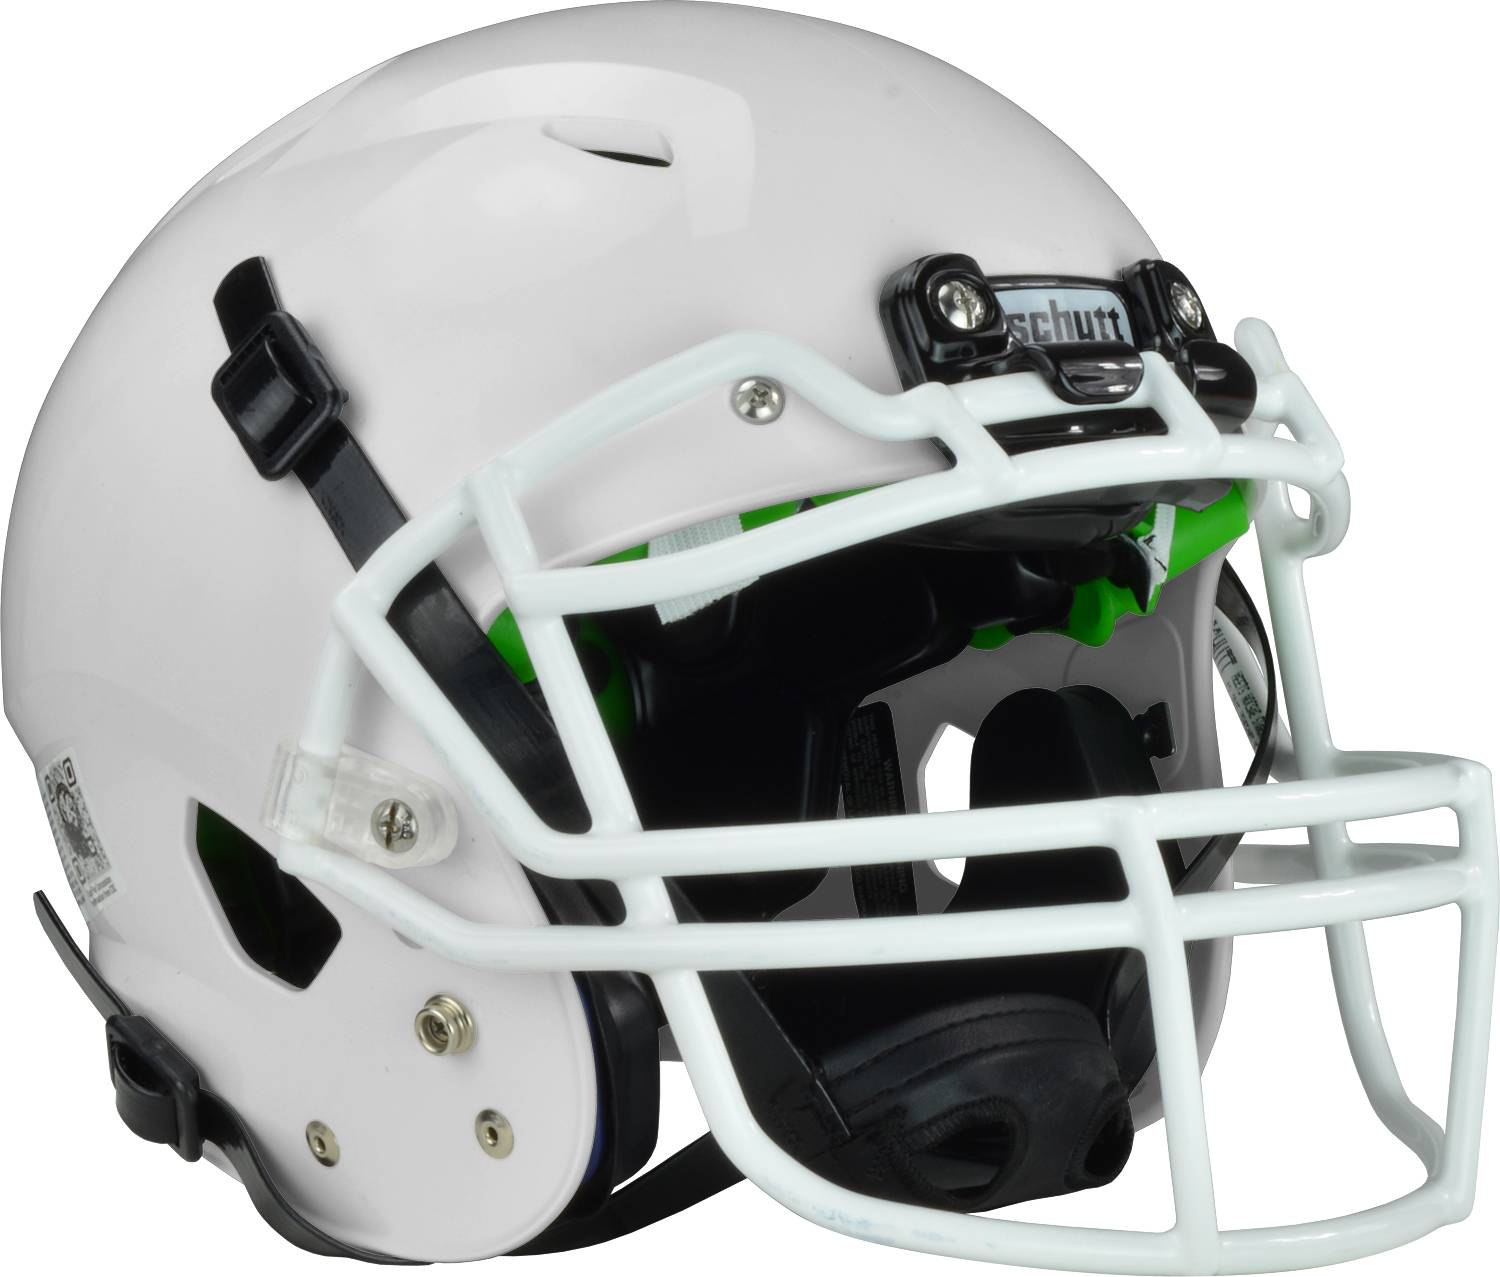 how to put a schutt visor on a schutt helmet